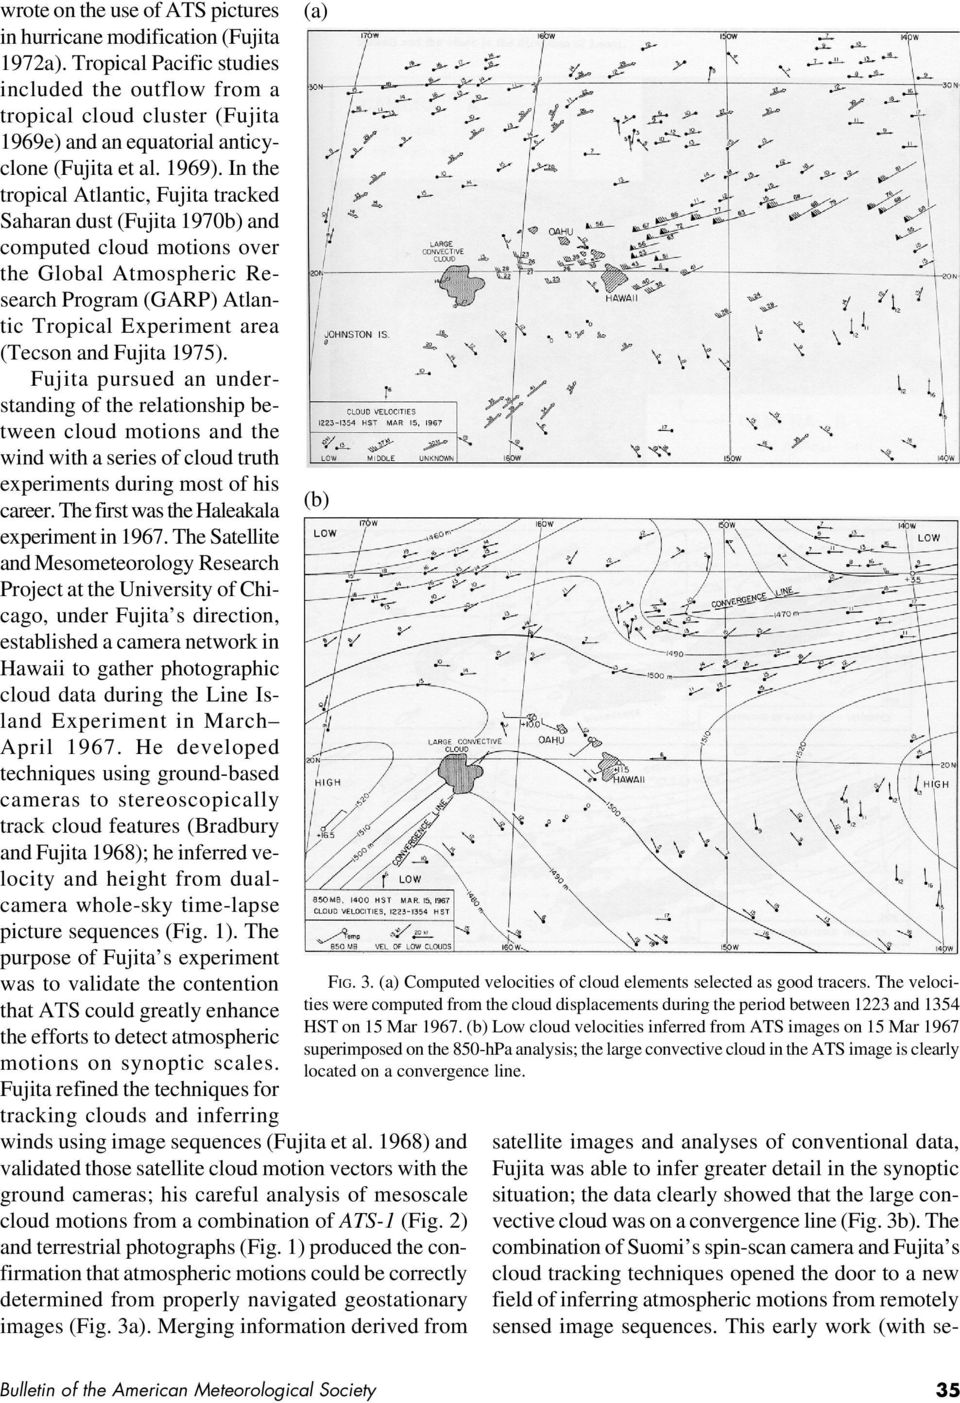 In the tropical Atlantic, Fujita tracked Saharan dust (Fujita 1970b) and computed cloud motions over the Global Atmospheric Research Program (GARP) Atlantic Tropical Experiment area (Tecson and